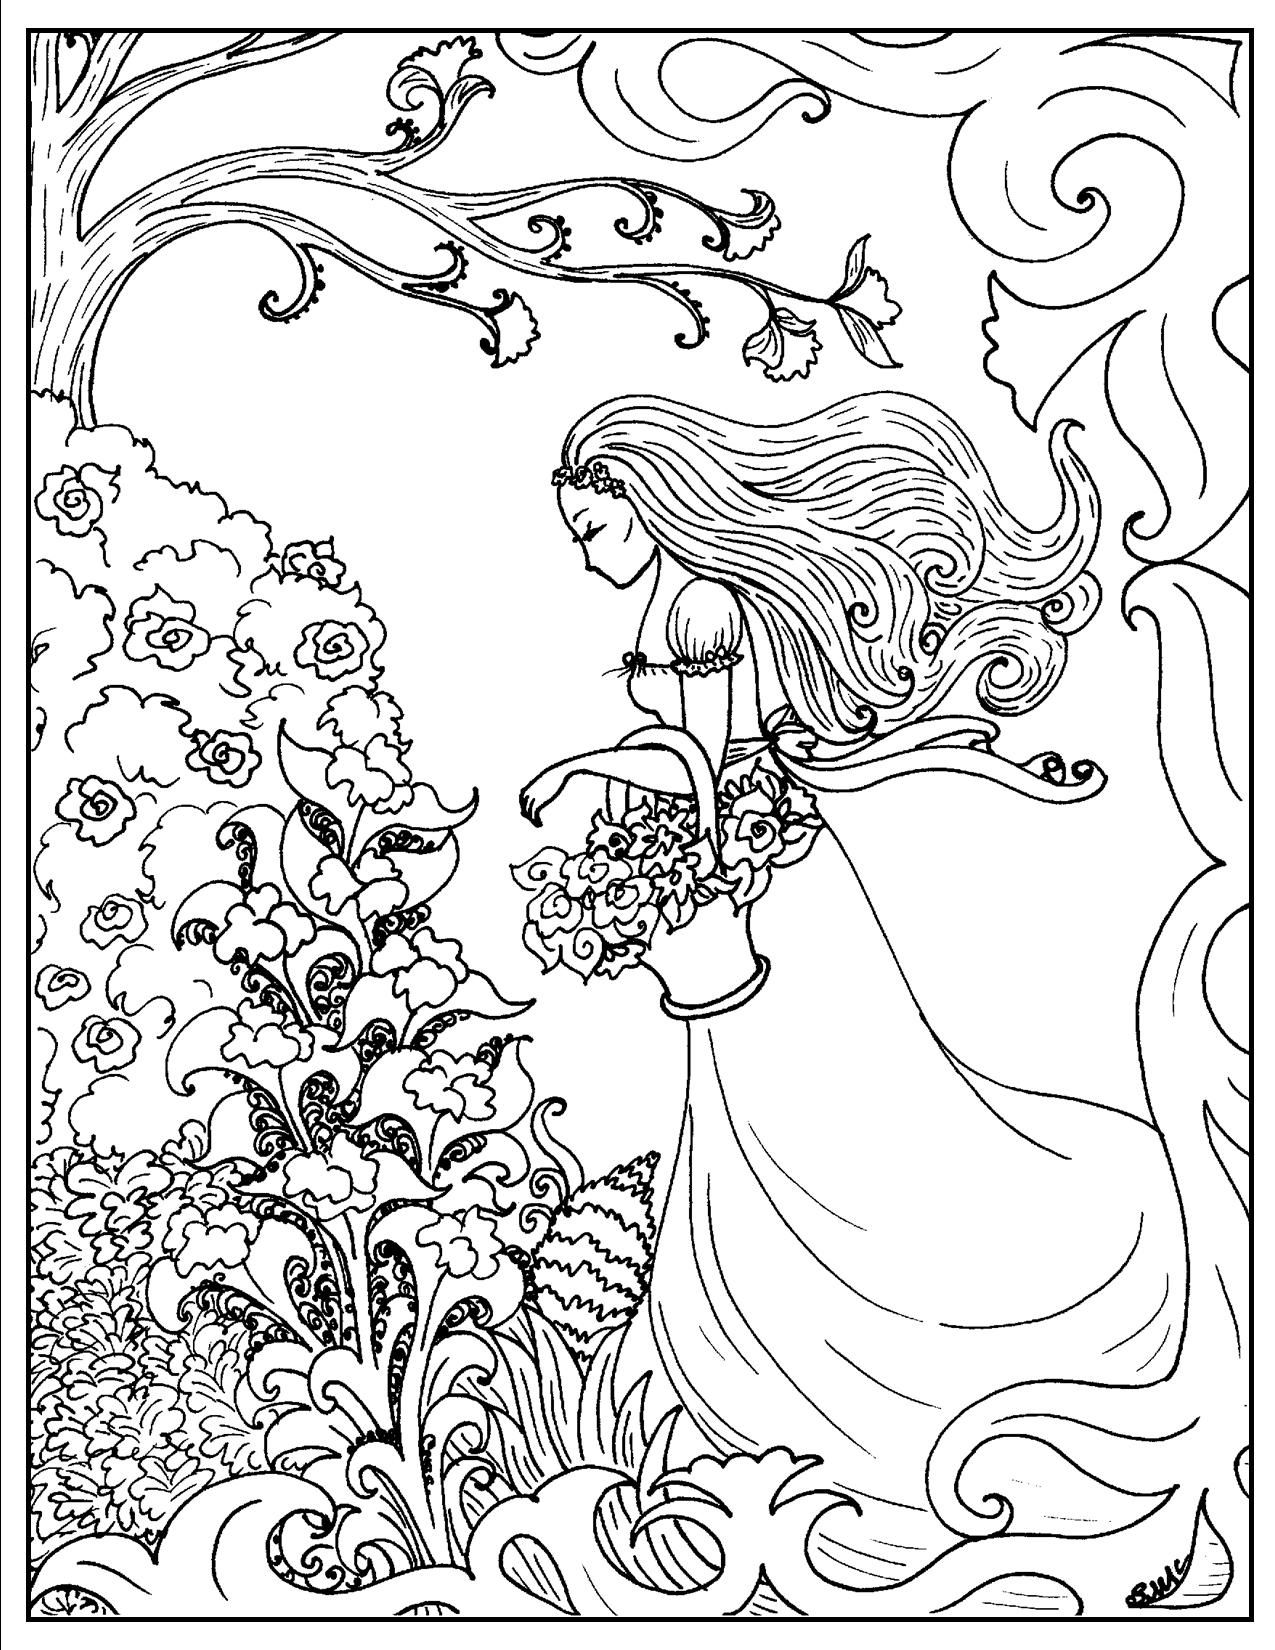 Art Nouveau Coloring Pages | S.Macu0027s Place ...